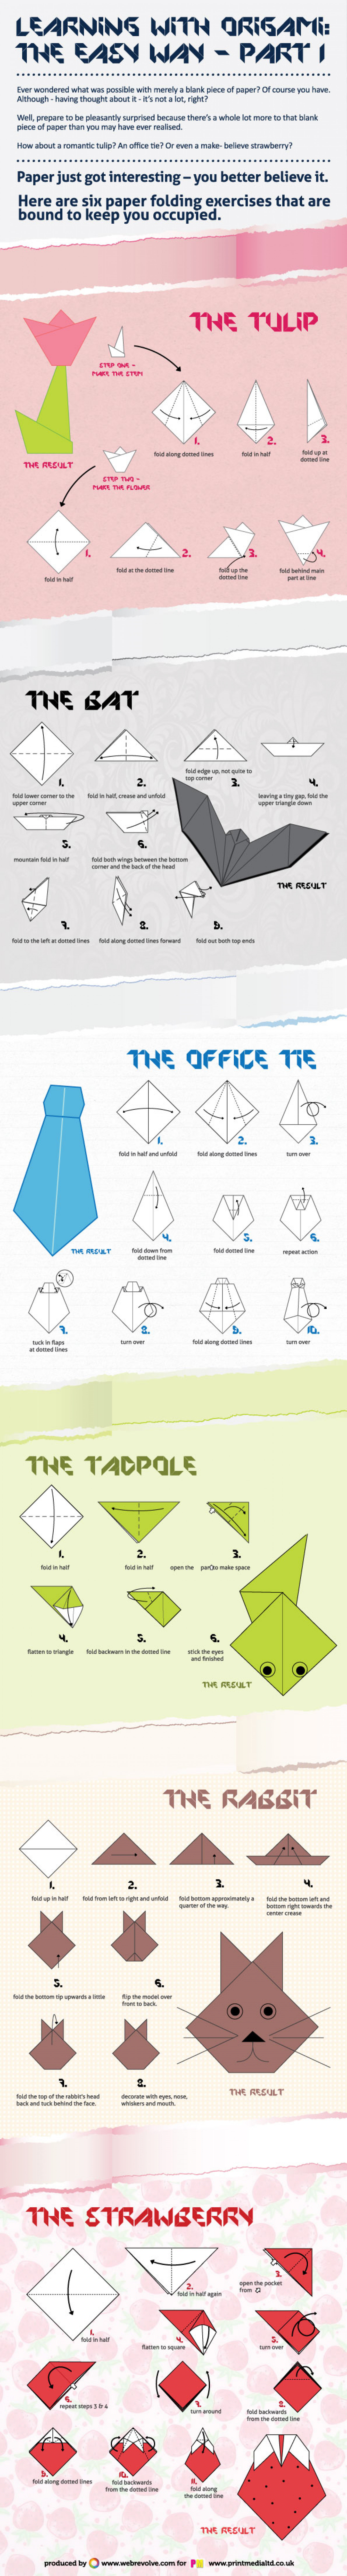 Learning With Origami: The Easy Way - Part 1 Infographic